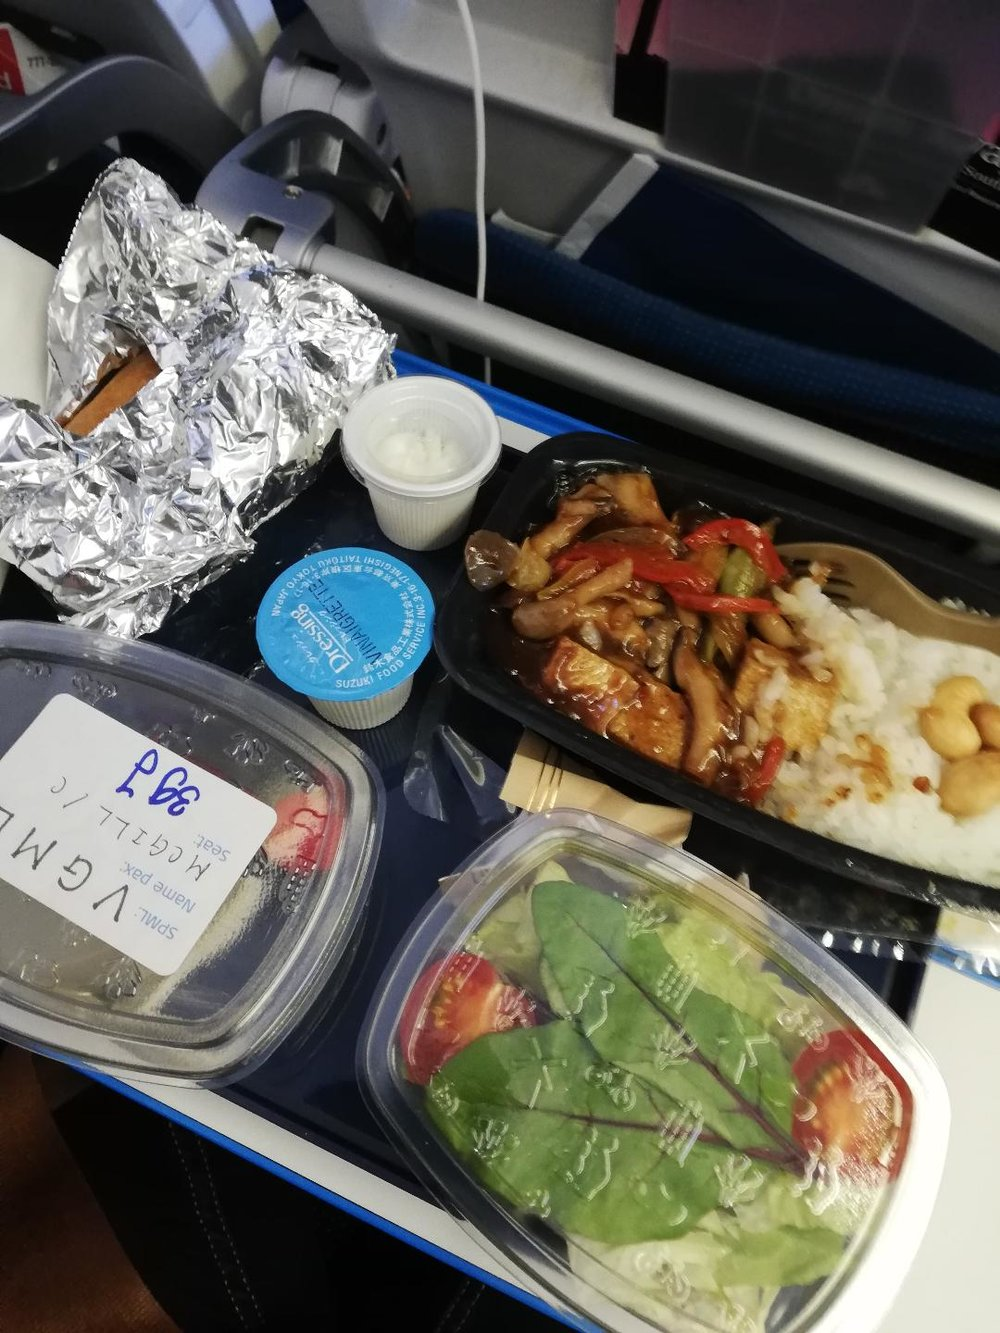 One of the meals on board KLM